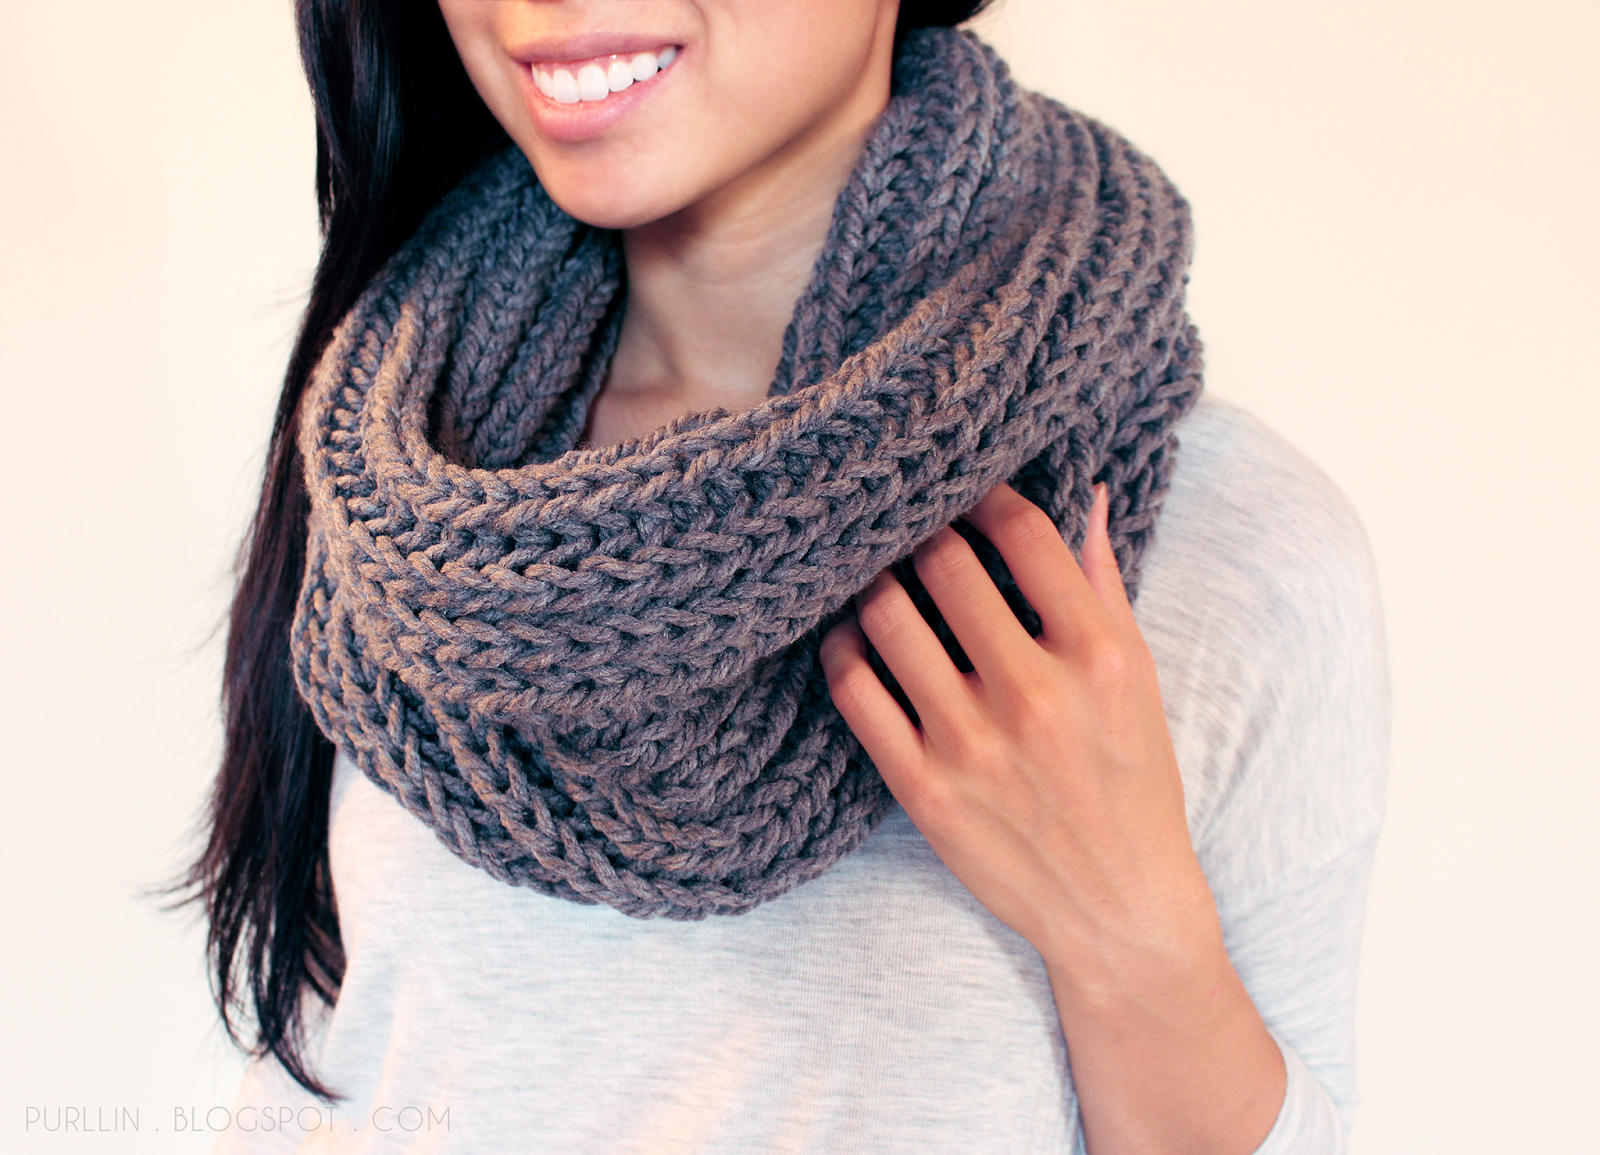 Free Patterns For Knitted Scarves : Purllin: Textured November Infinity Scarf Free Pattern